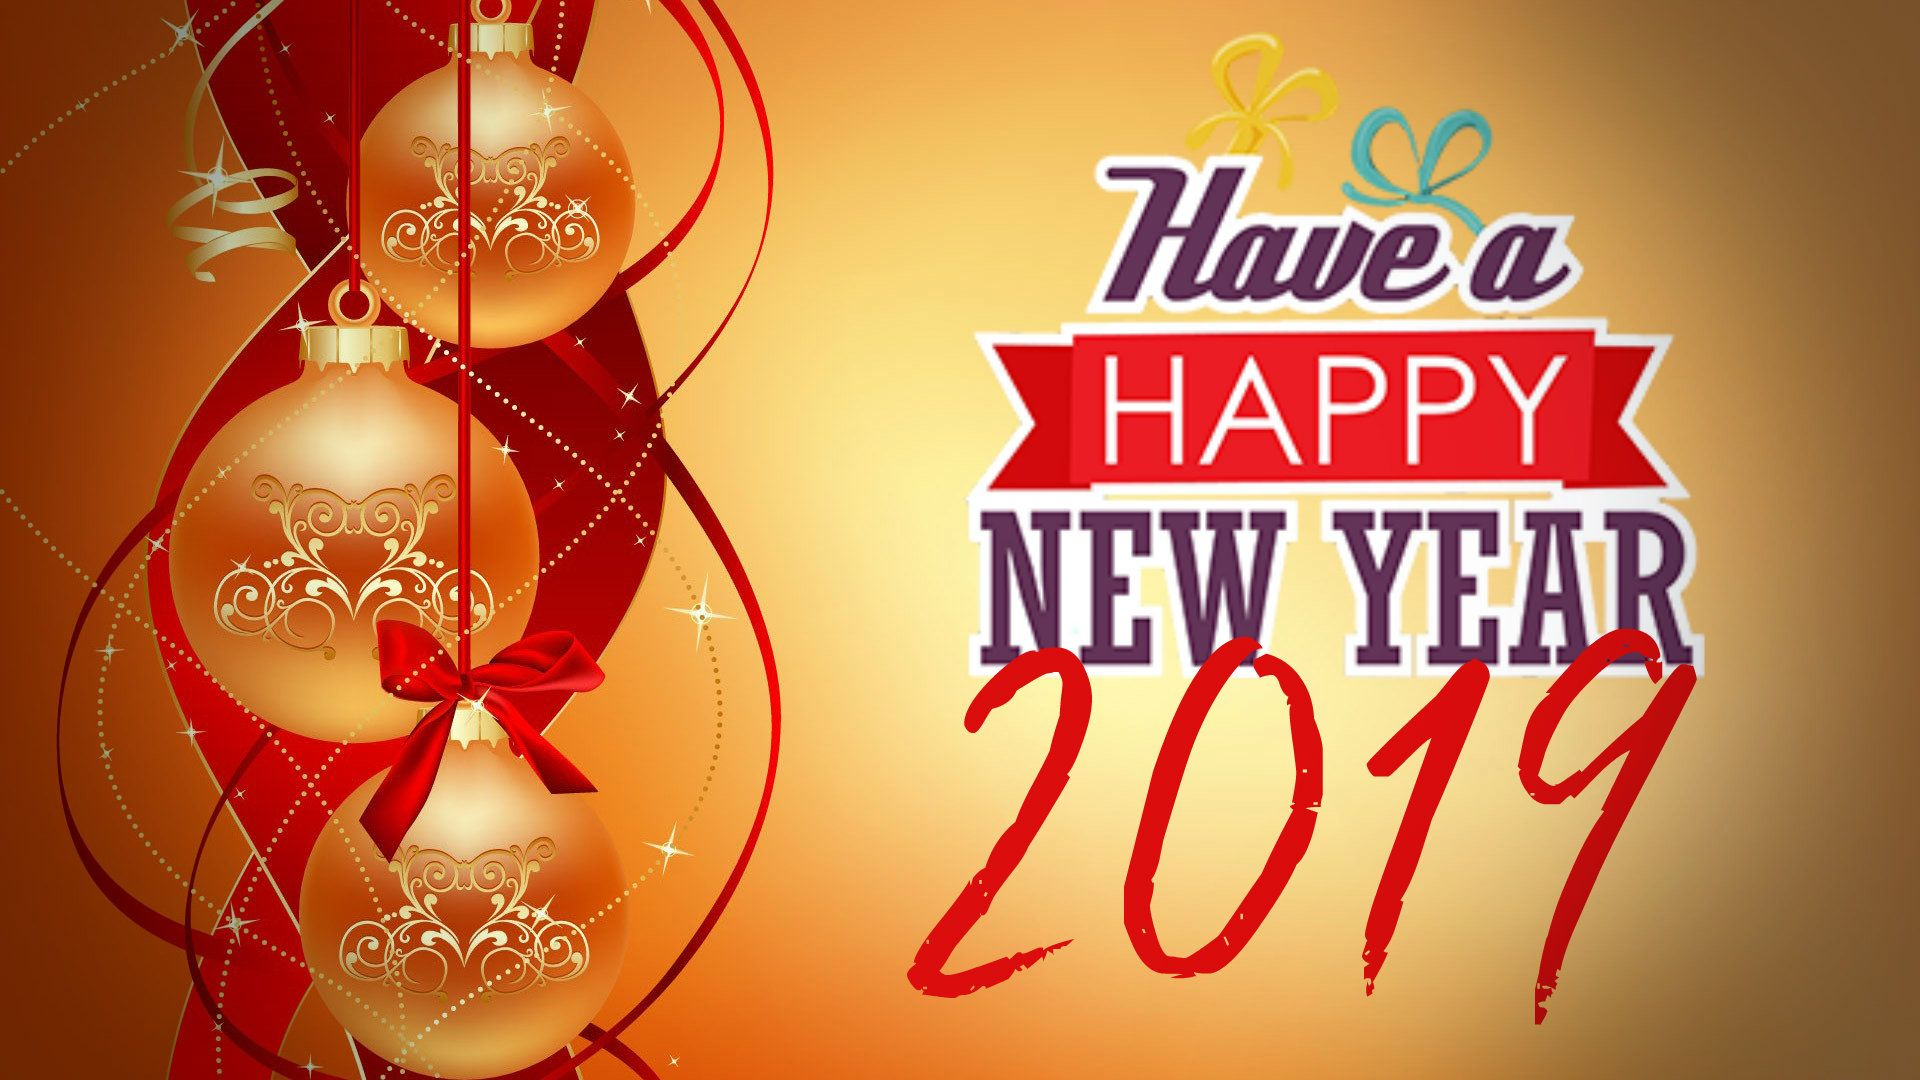 Happy New Year 2019 Wallpapers HD #HappyNewYear #happynewyear2019